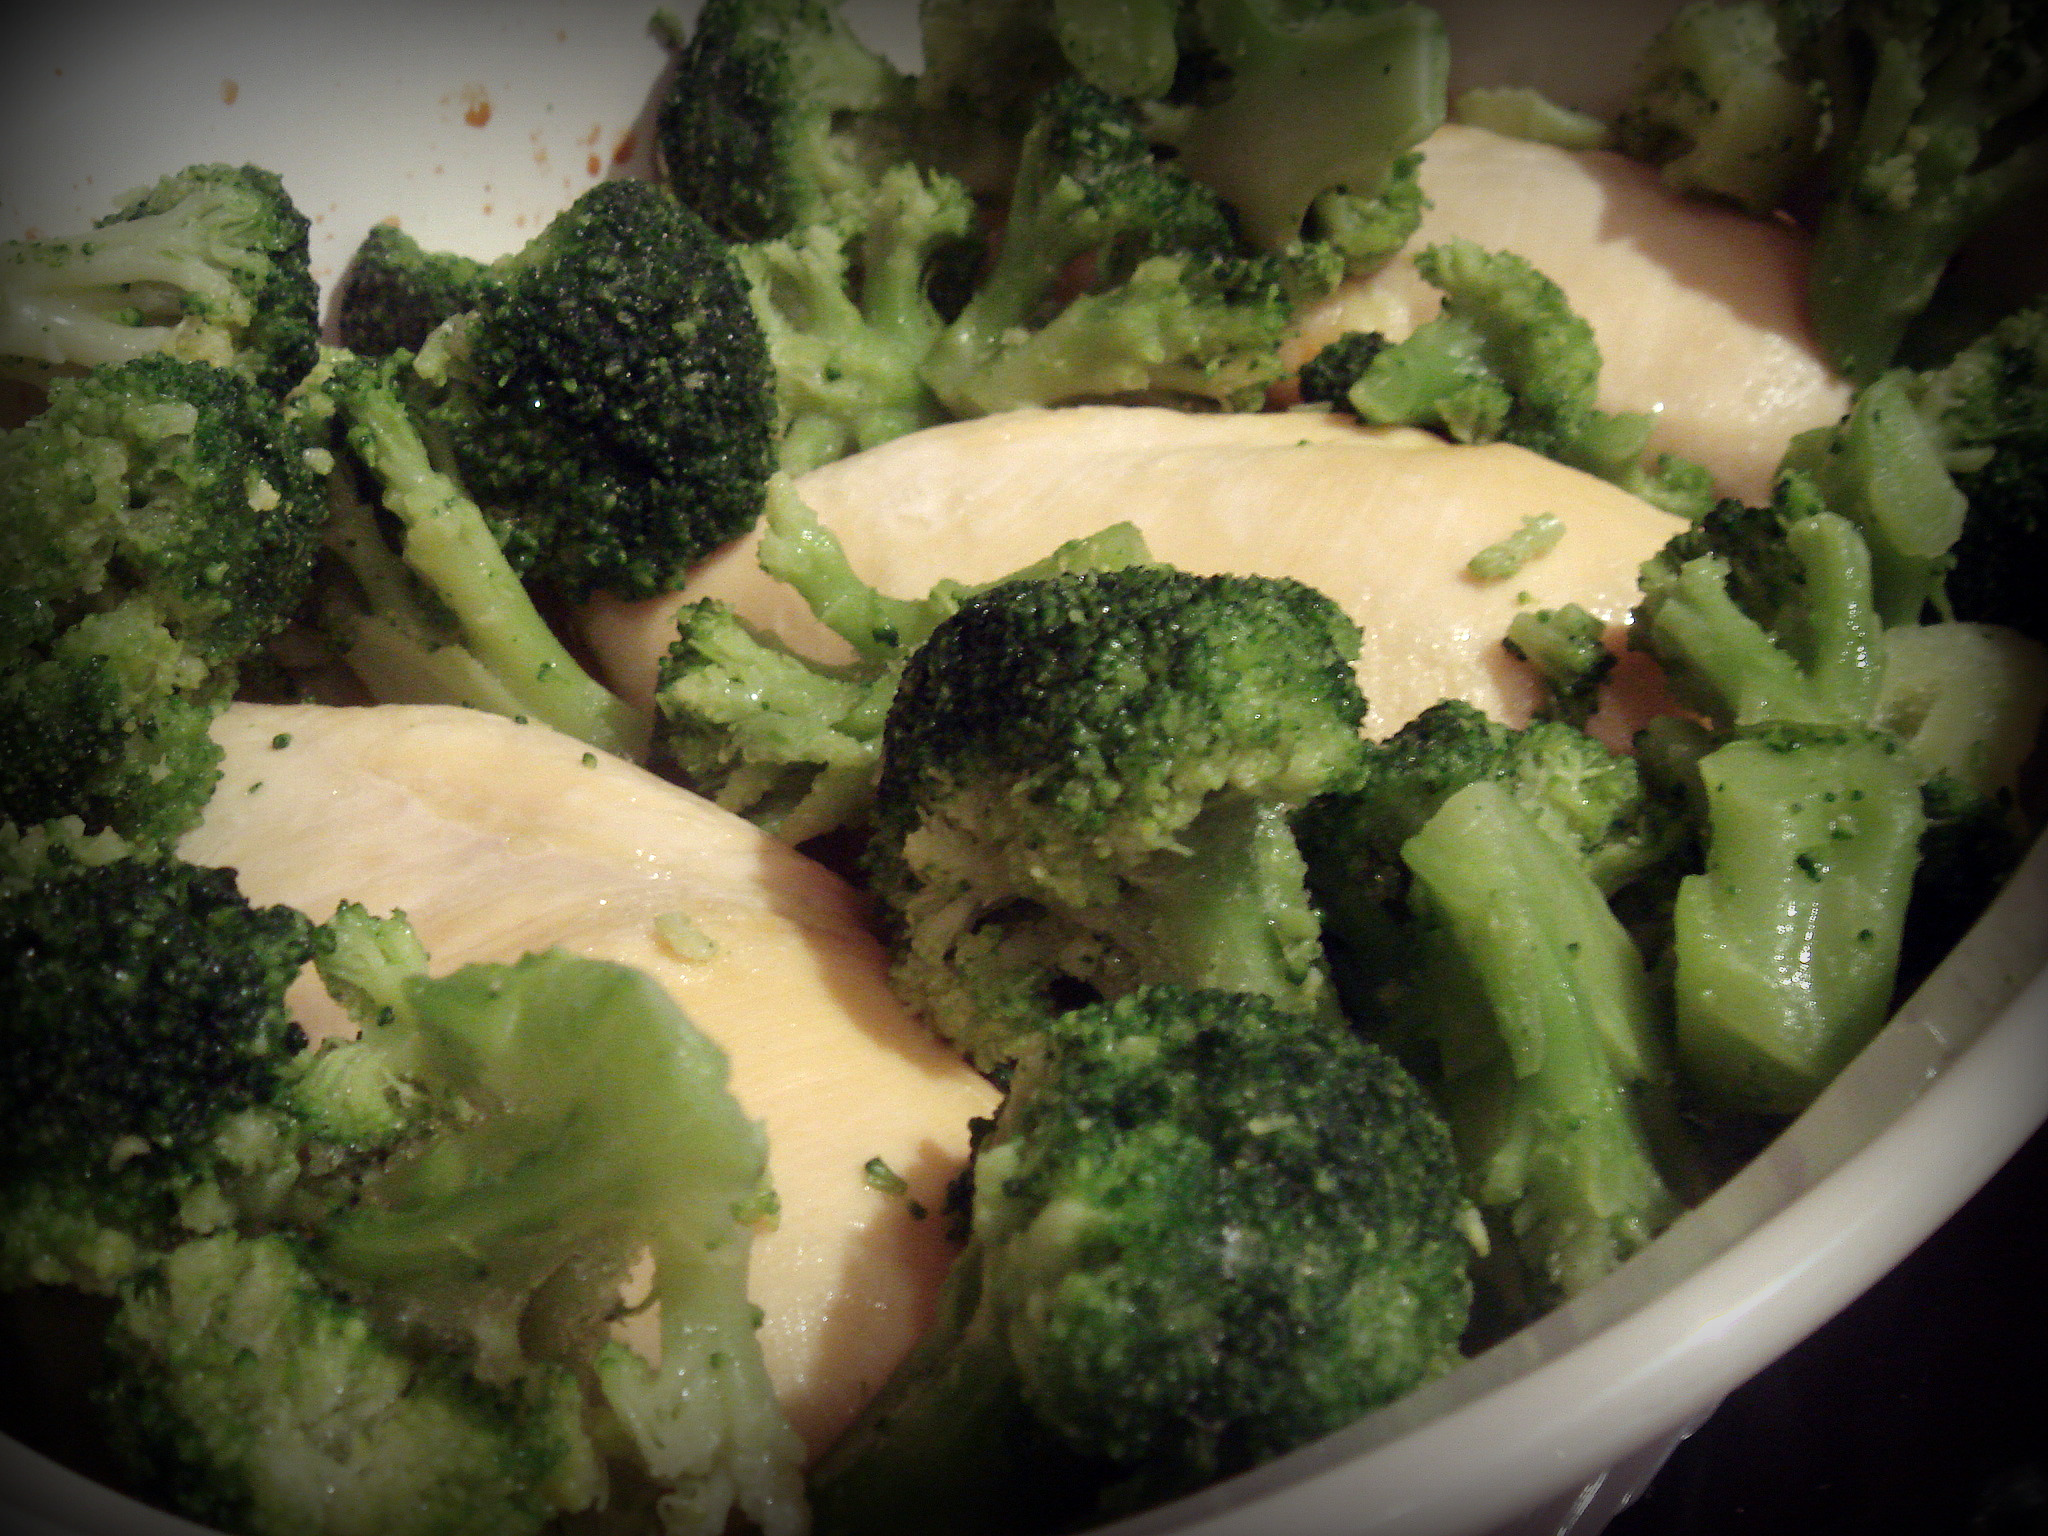 chicken nestled in a forest of broccoli - yum yum!